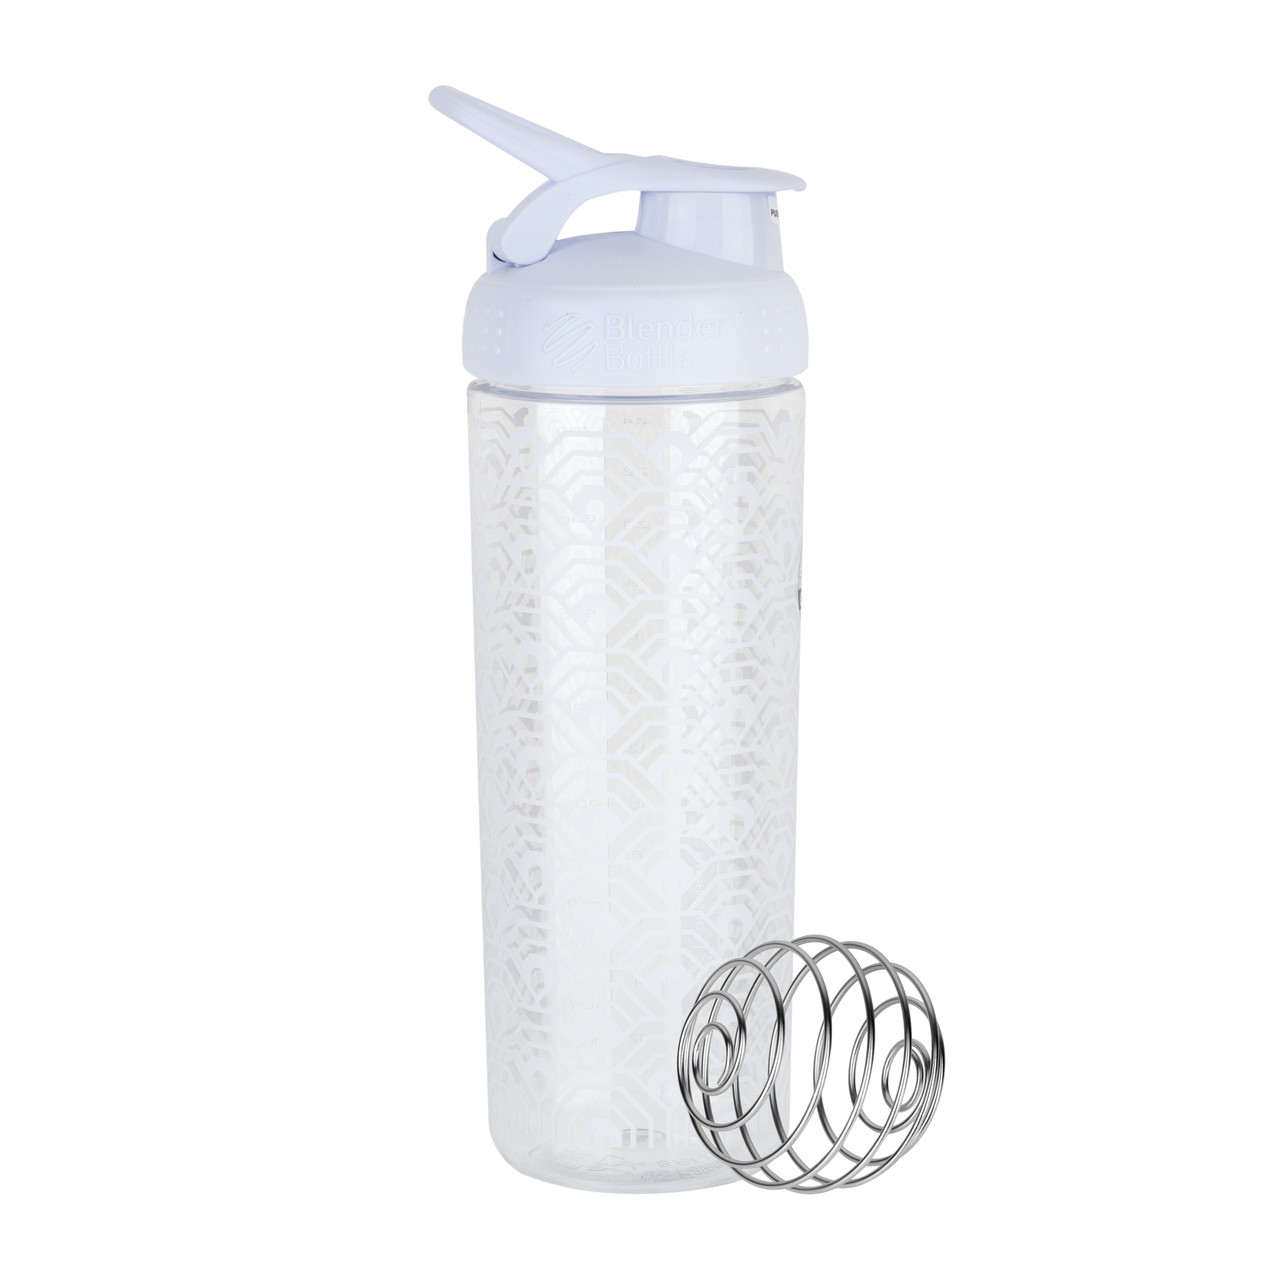 Спортивная бутылка-шейкер BlenderBottle SportMixer Signature Sleek WHITE CLAMSHELL 820мл (ORIGINAL)